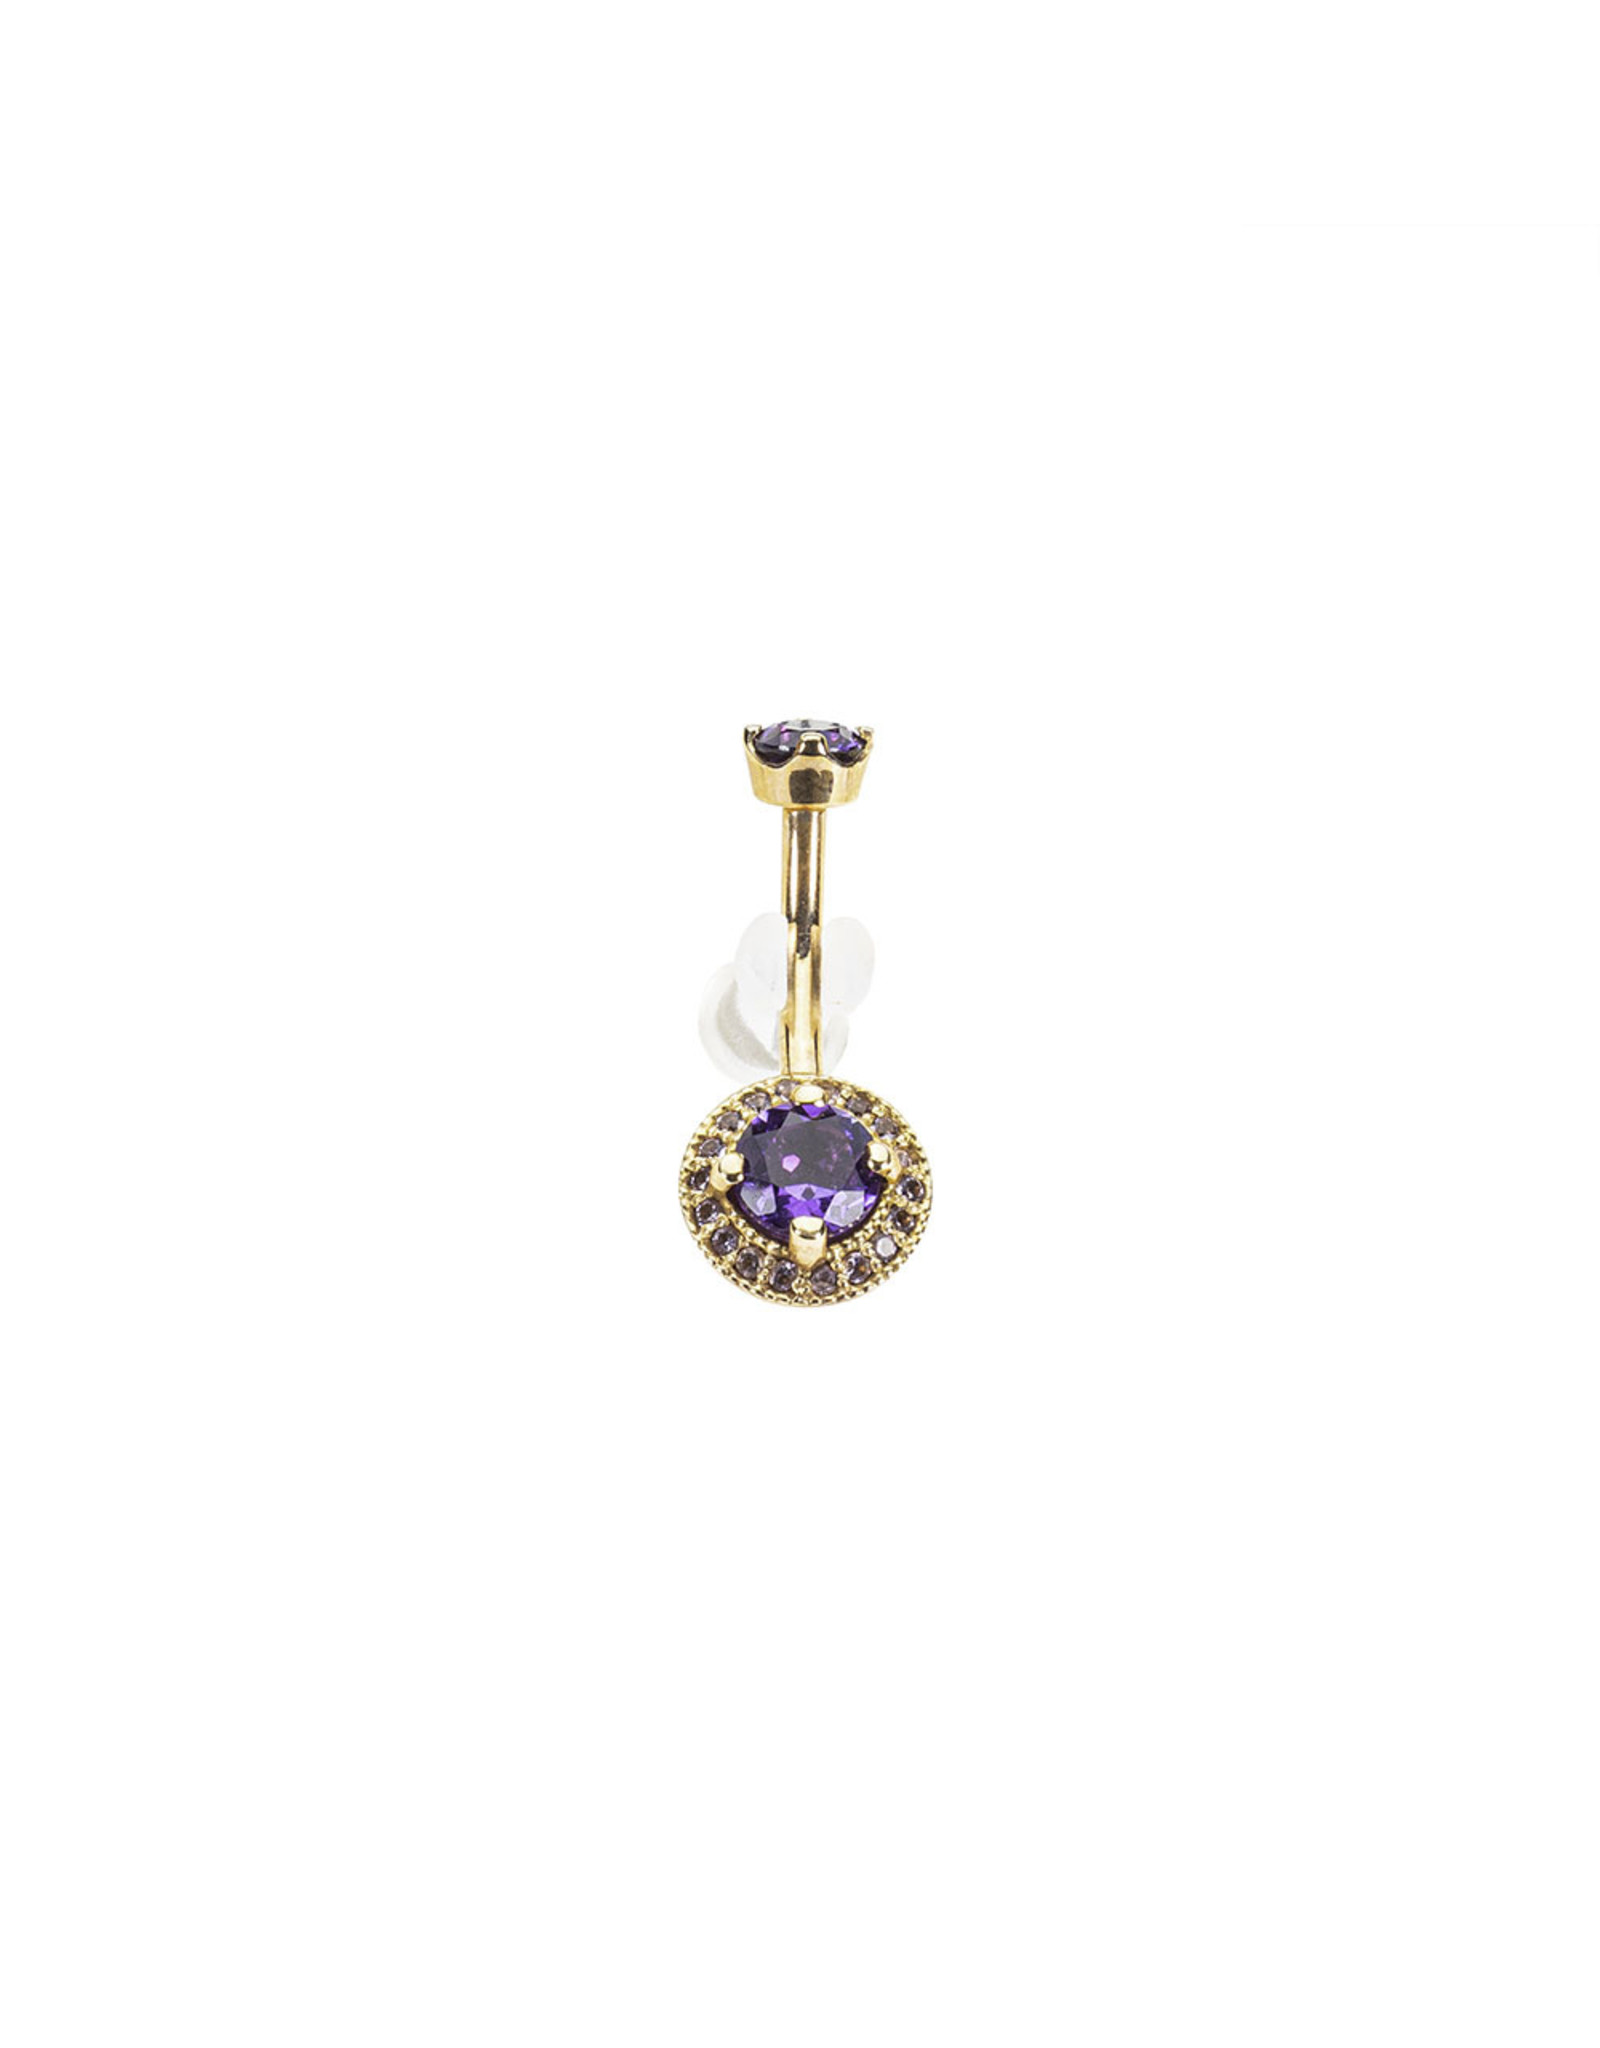 """BVLA BVLA 14g 3/8 rose gold """"Halo"""" navel curve with 4.0 prong set Amethyst top and a 5.0 amethyst center surrounded by 1.0 light amethyst"""